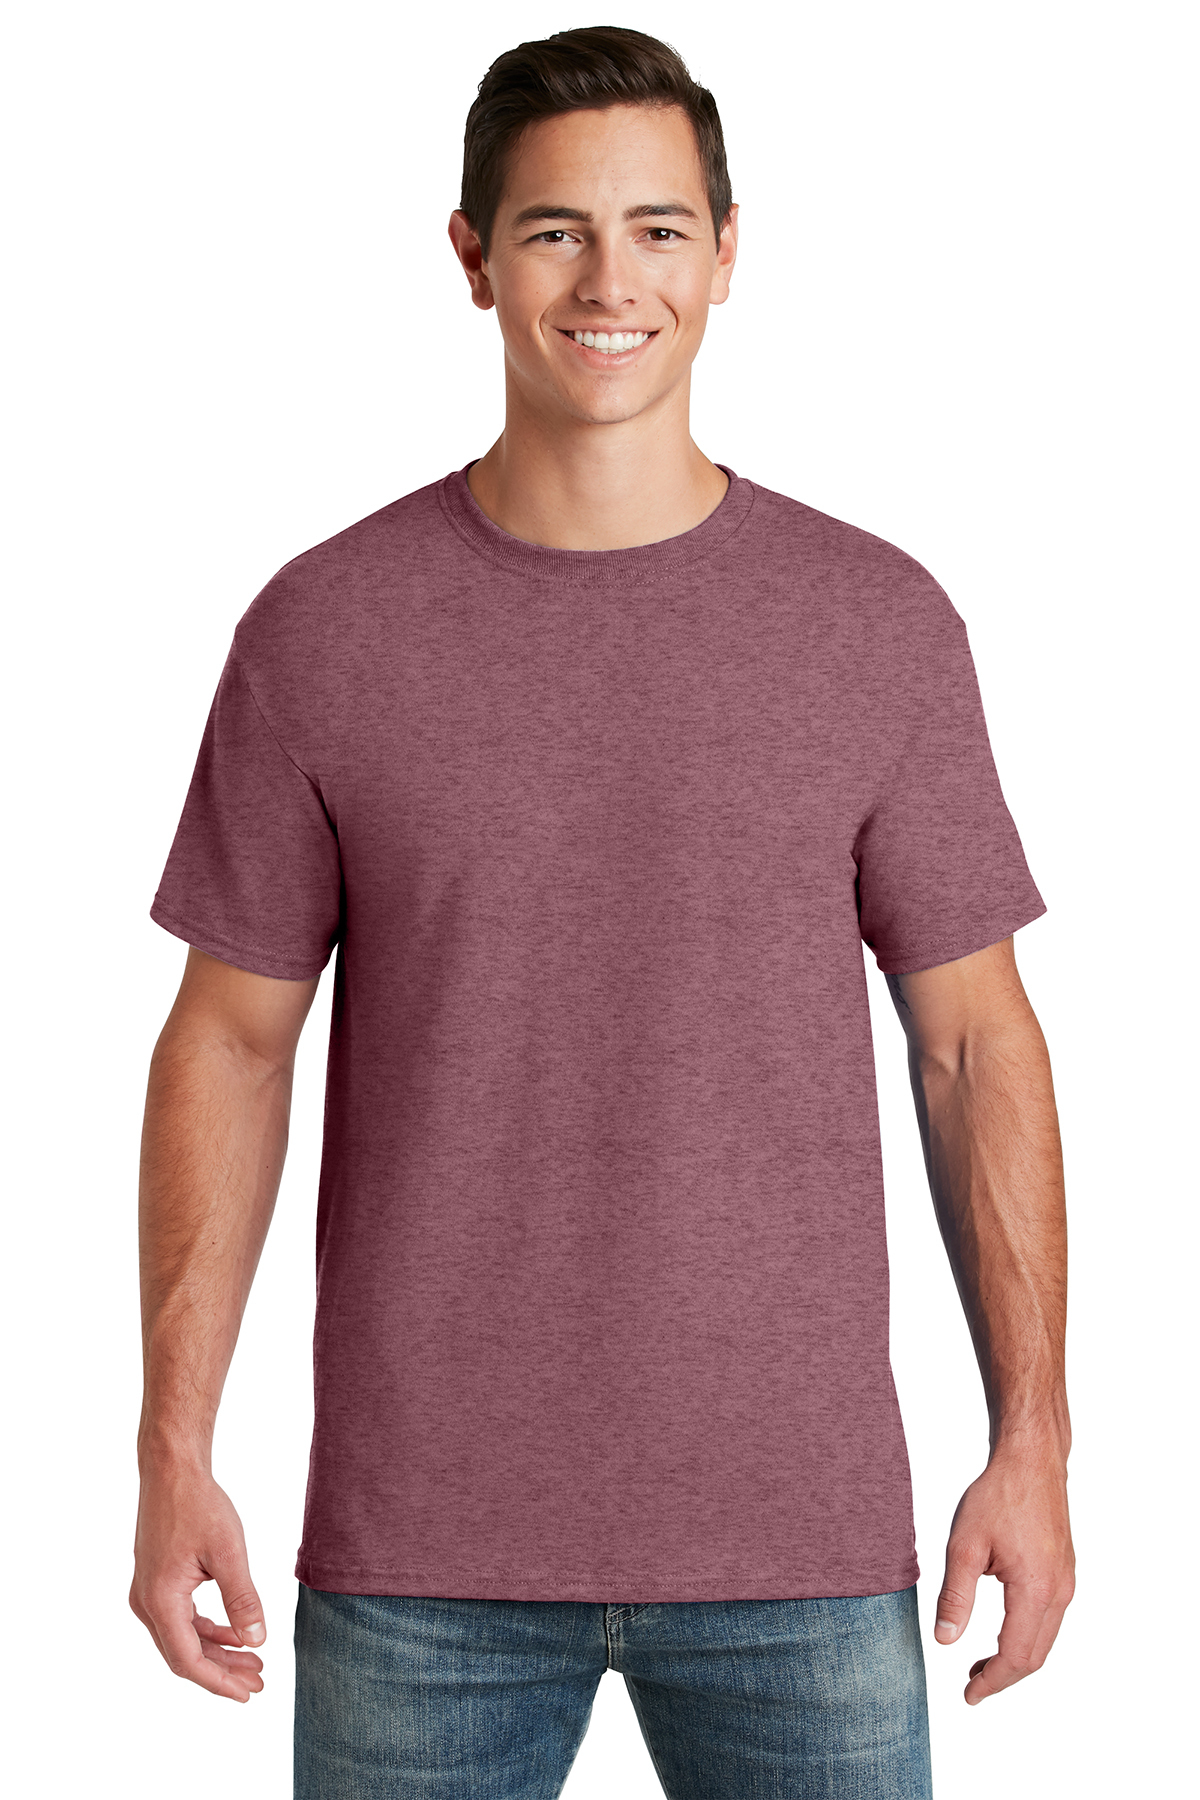 Customized Color 100% Cotton T-Shirts!